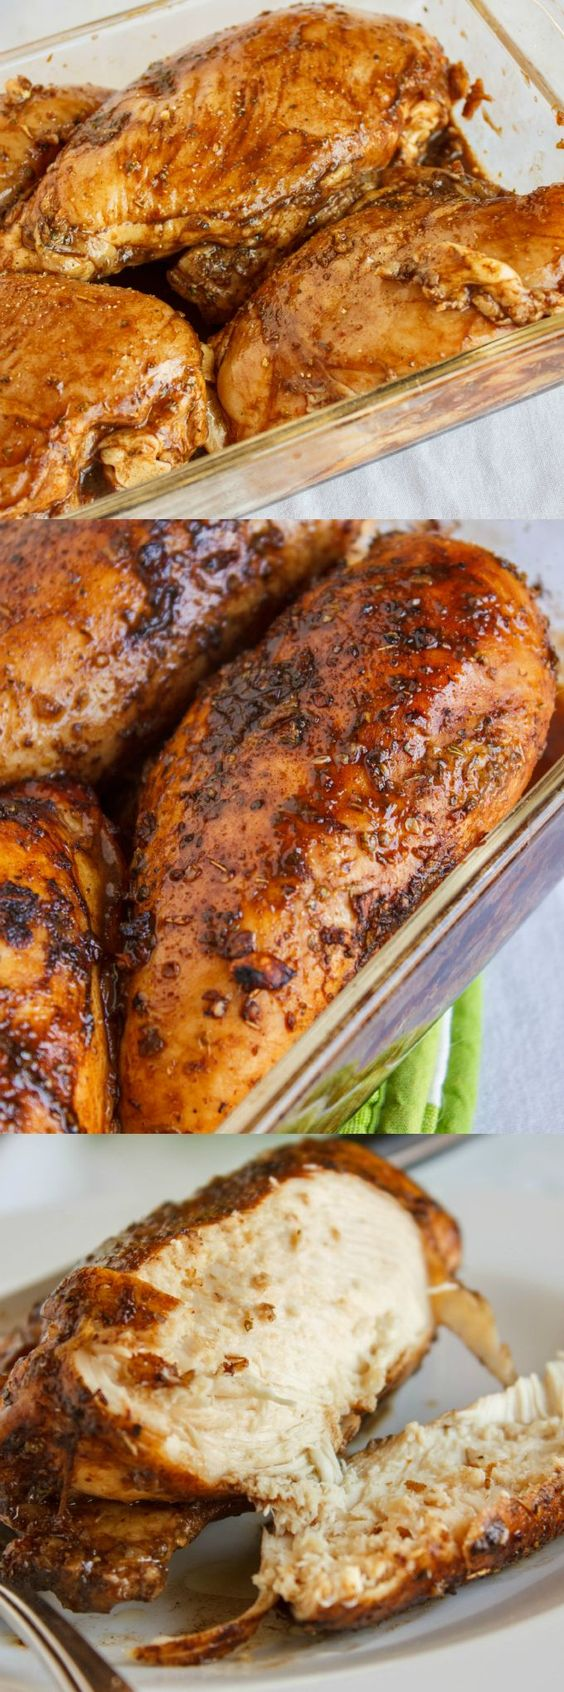 how to cook bone in chicken breast on bbq